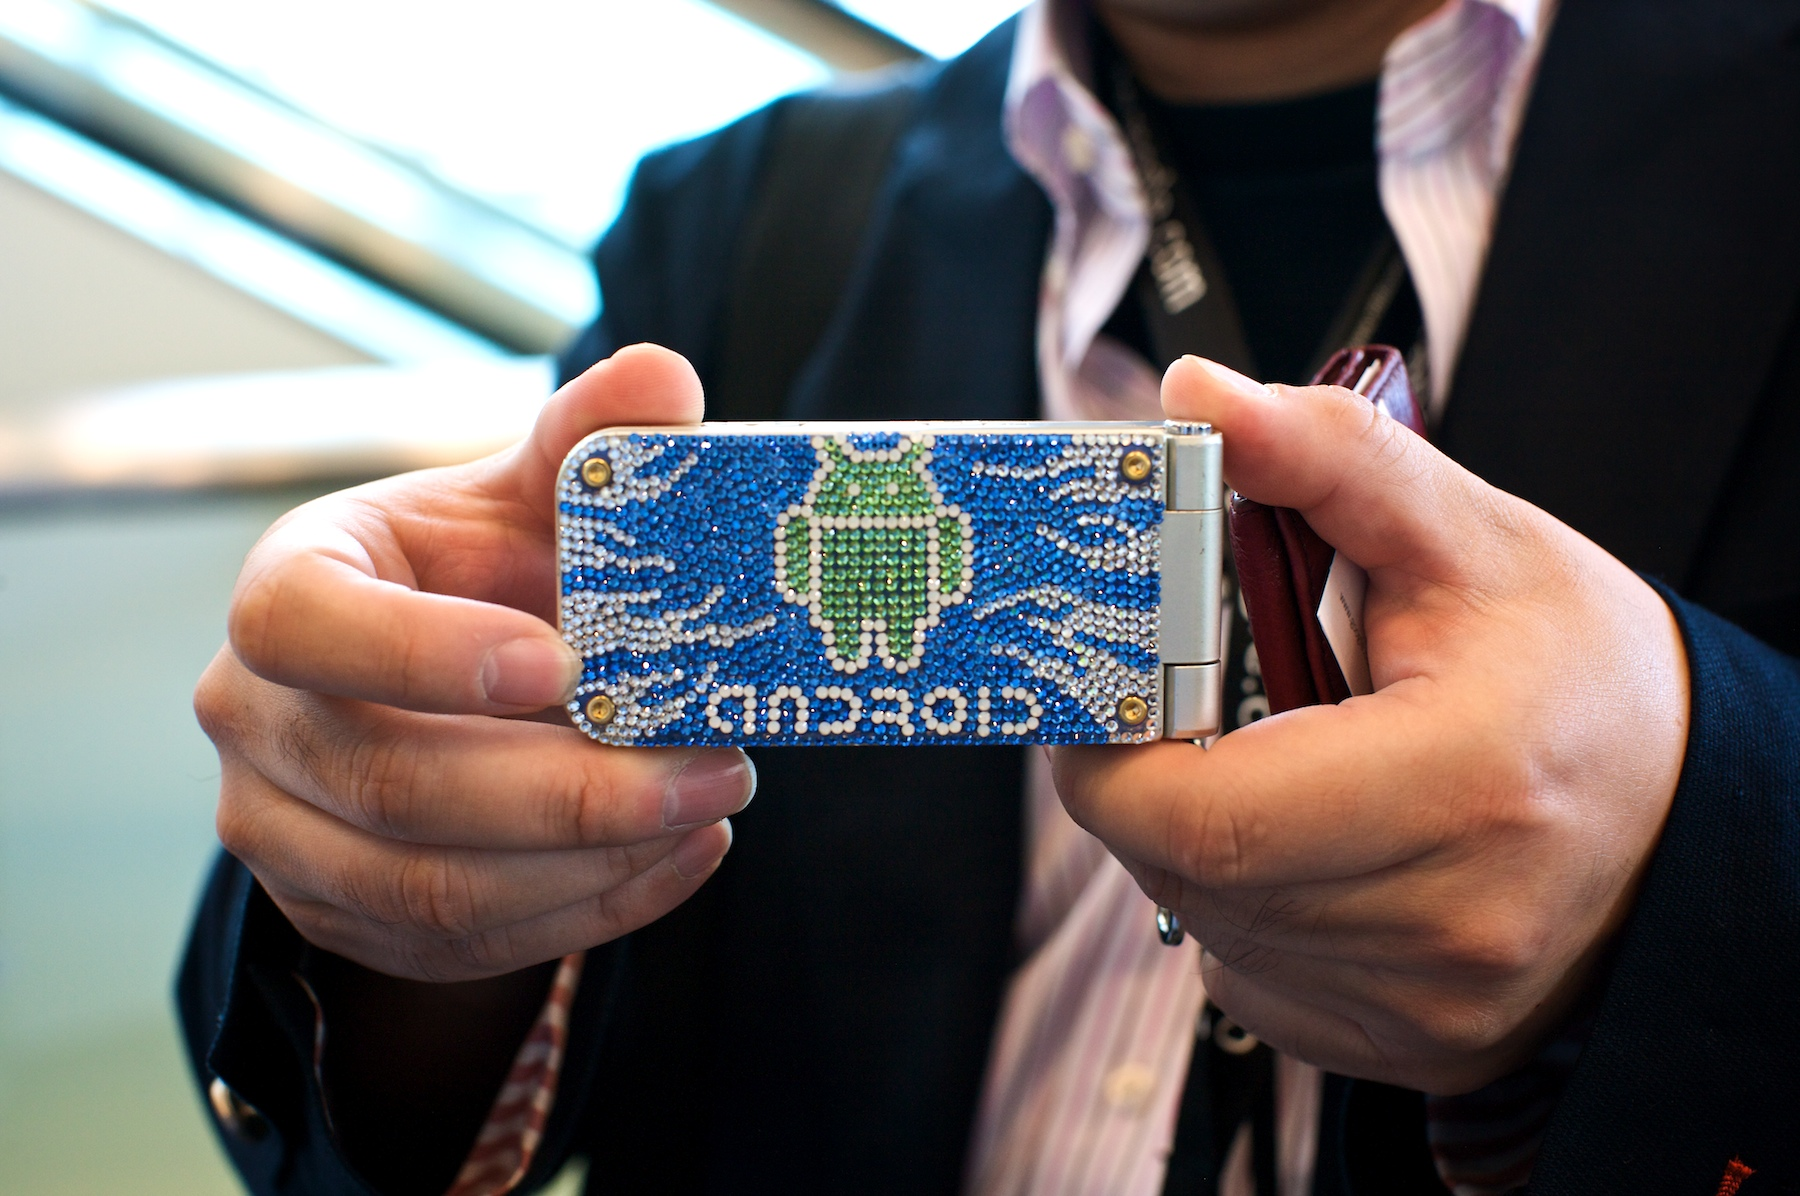 Photo: Spotted at Google I/O on a Japanese visitor's mobile phone.